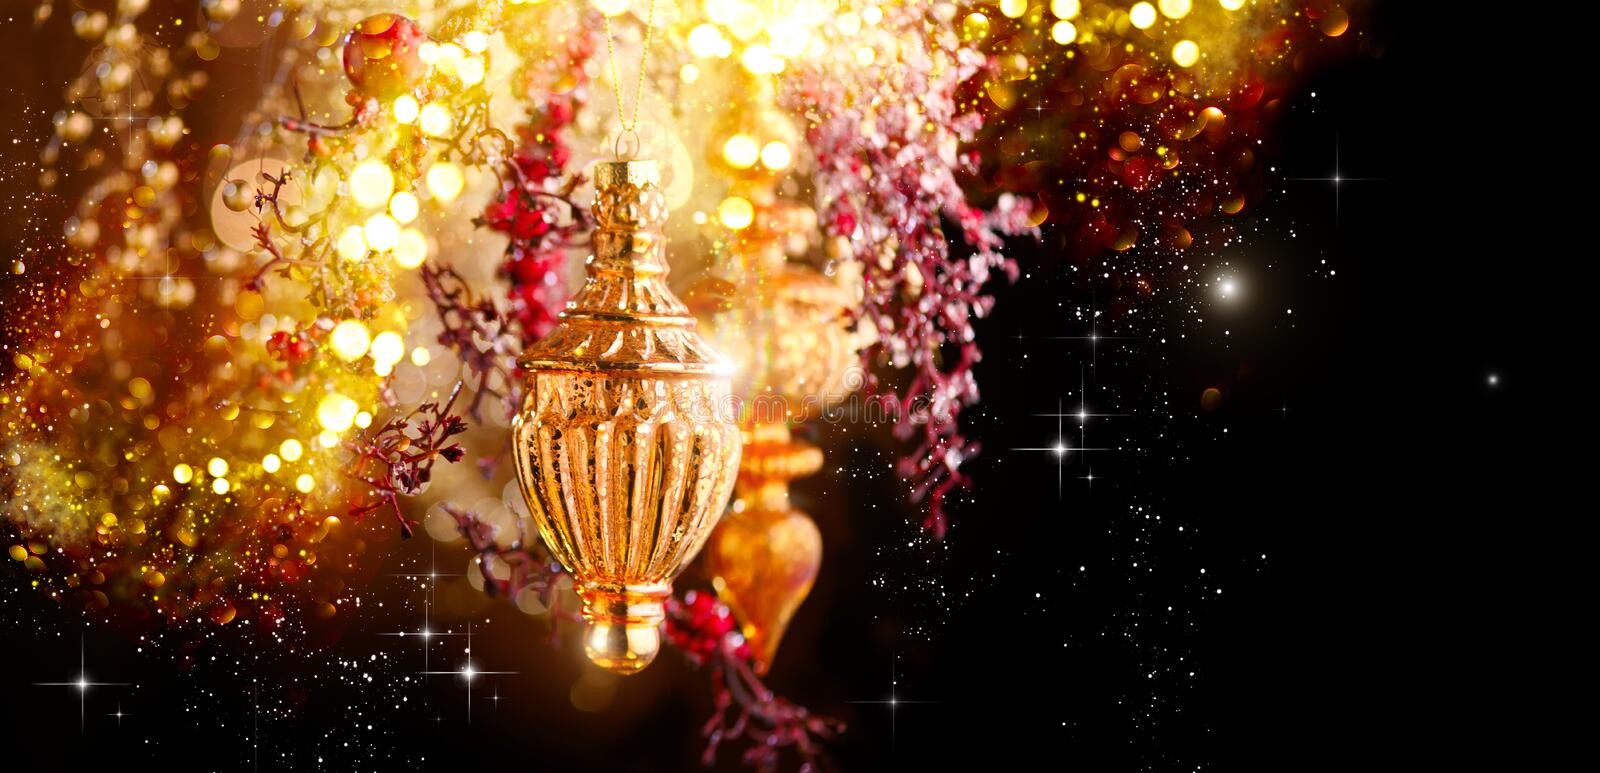 Christmas and New Year Golden Decoration. Abstract Blurred Bokeh Holiday Background with beautiful baubles and Blinking Garland. Christmas Tree Lights royalty free stock image